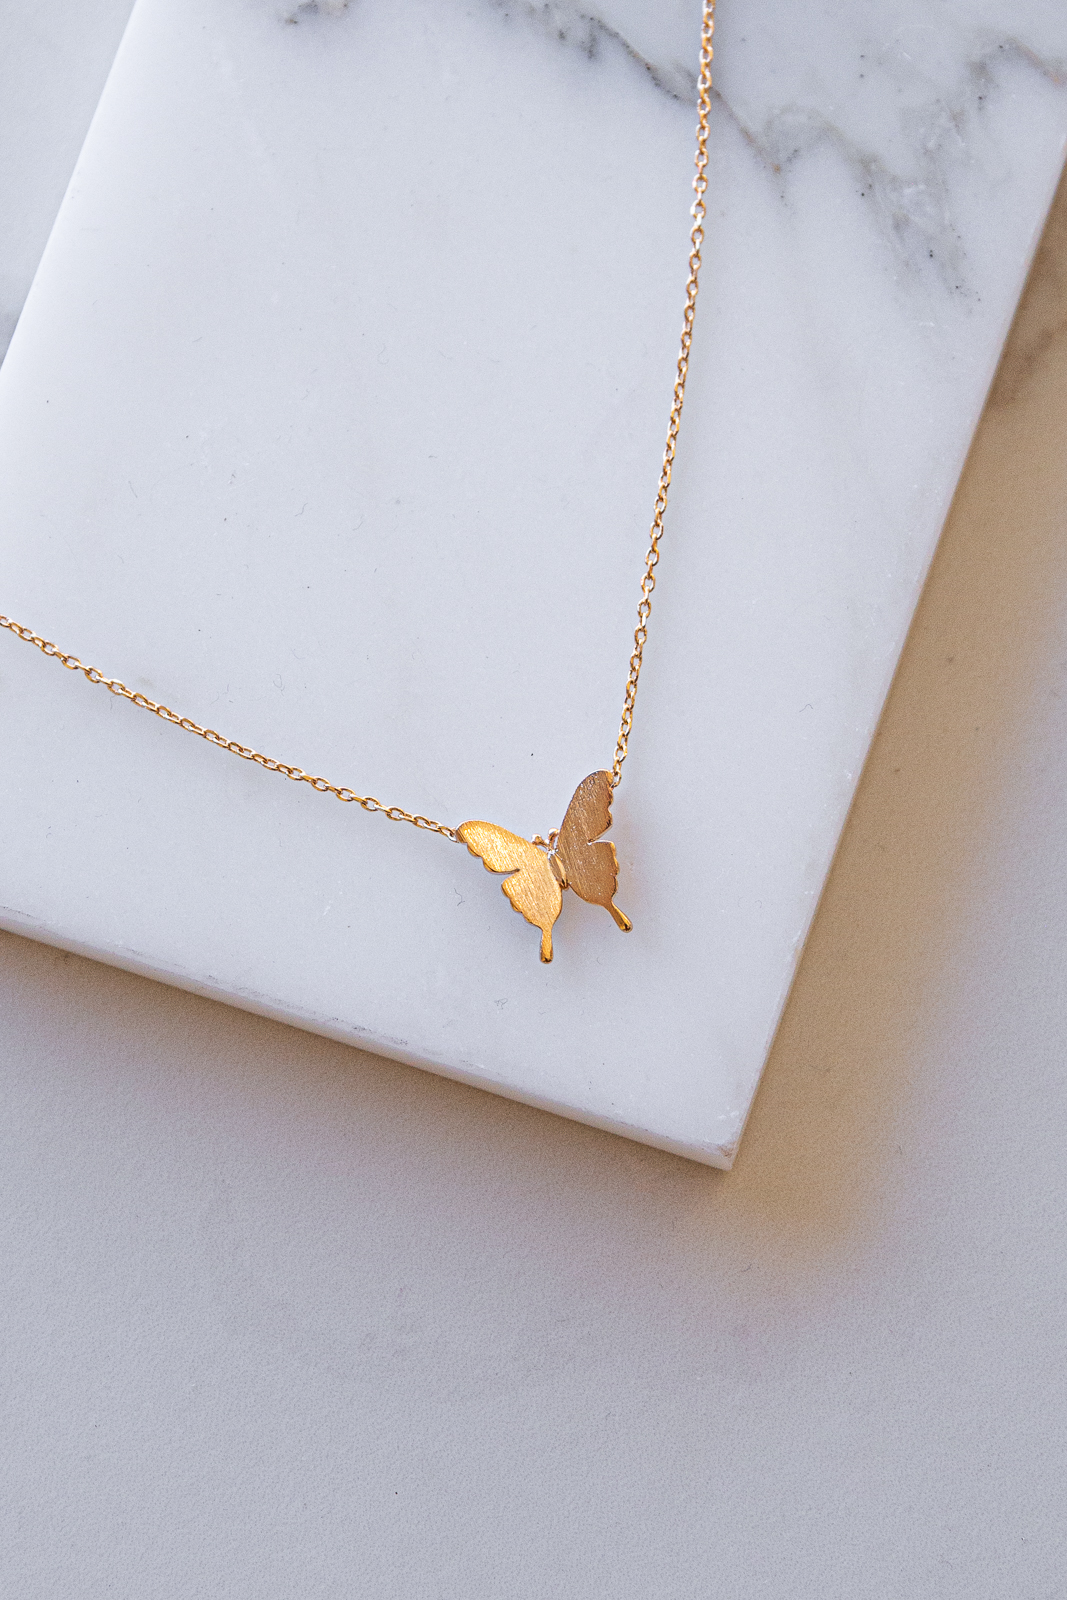 Brushed Gold Butterfly Charm Necklace with Dainty Chain